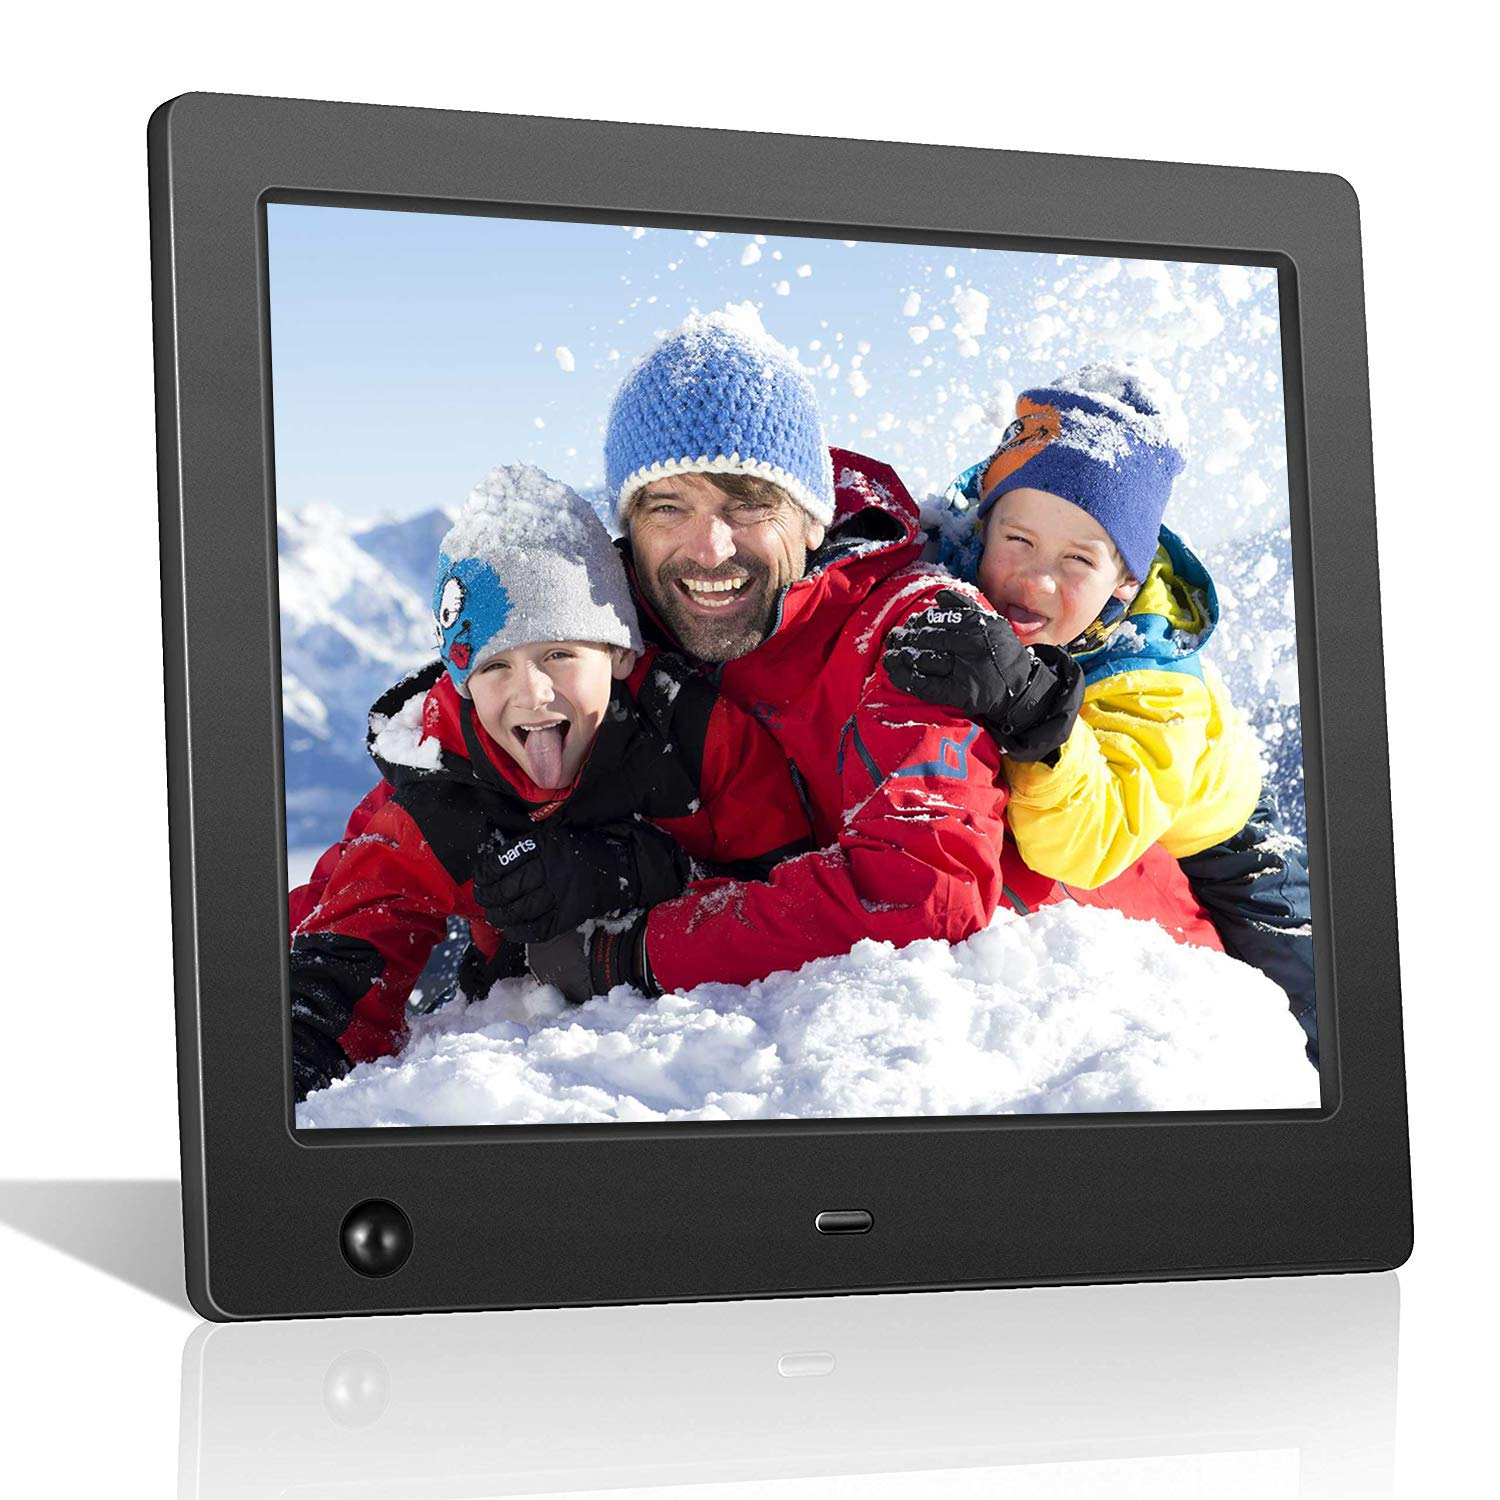 Digital Picture Frame 8 inch, Digital Photo Frame Video Player with Motion Sensor Smart Electronics Picture Frame High Resolution 1024x768 IPS LCD/1080P 720P /Stereo/MP3/Calendar/Time/Remote Control by Quality Life